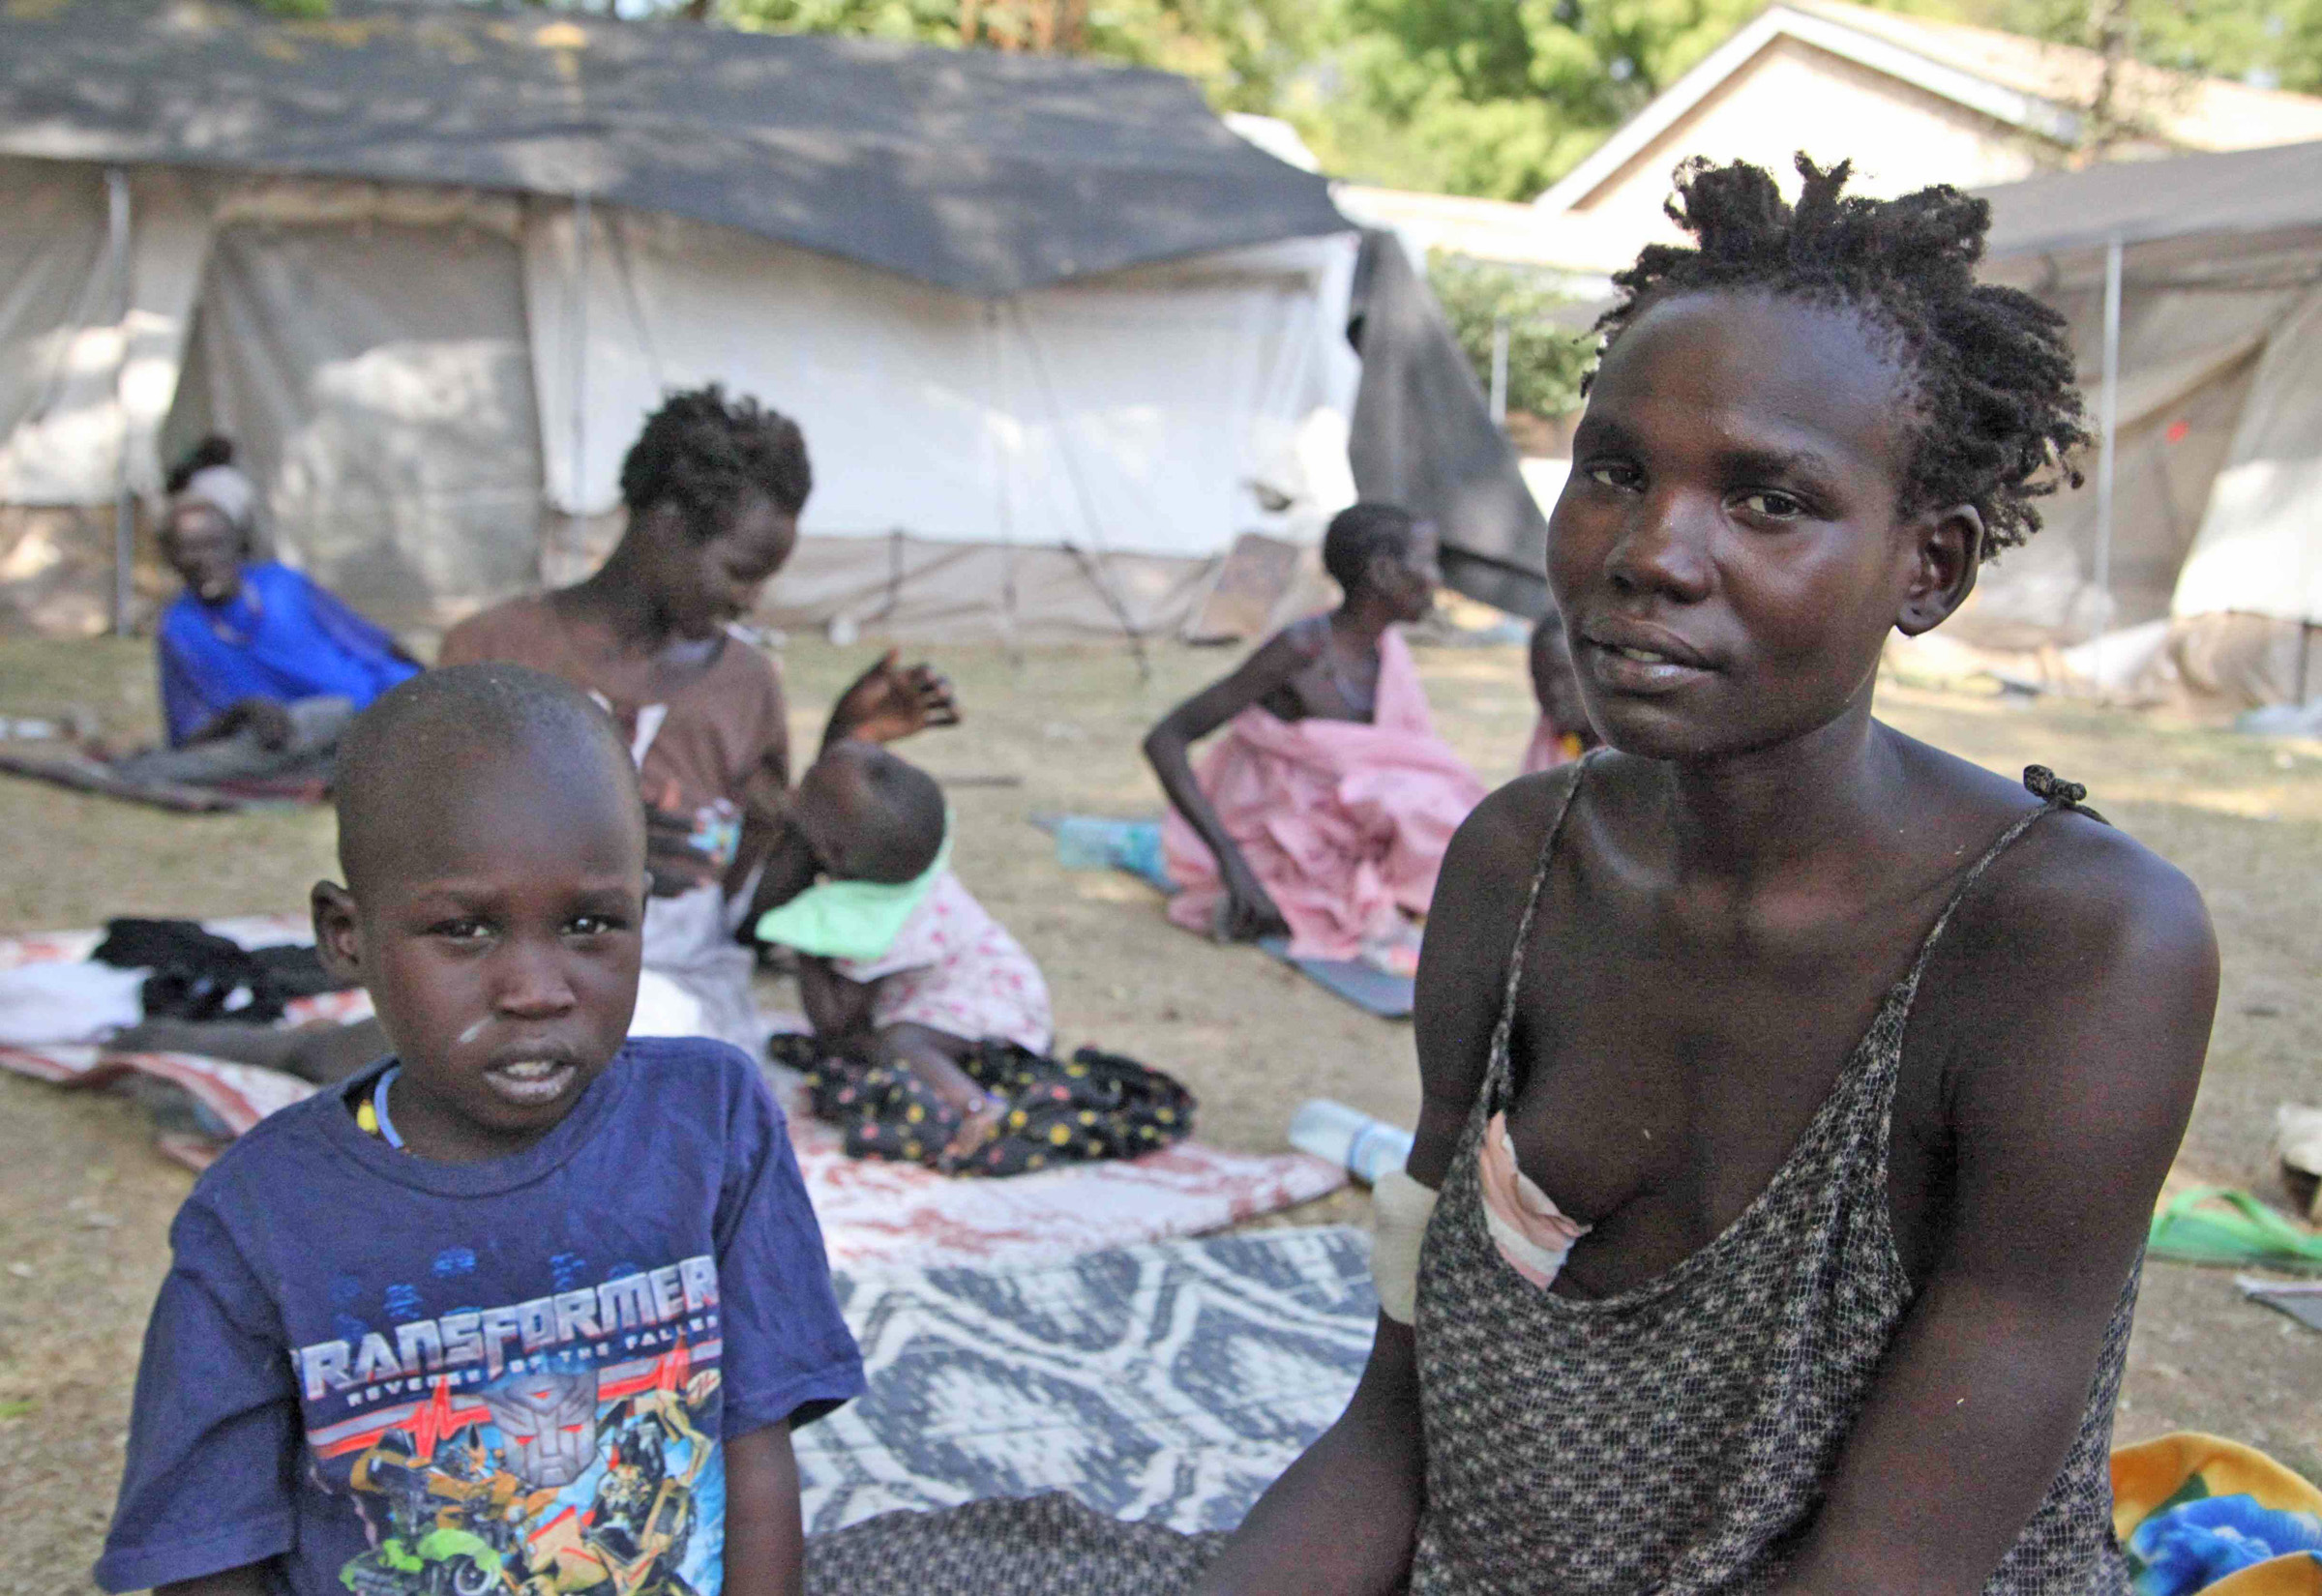 Lilkeng Gada witnessed her husband, baby and toddler shot dead while trying to flee from attackers in Pibor County, in South Sudan's Jonglei state. She and another son managed to escape to Juba, where she is being treated for a gunshot wound